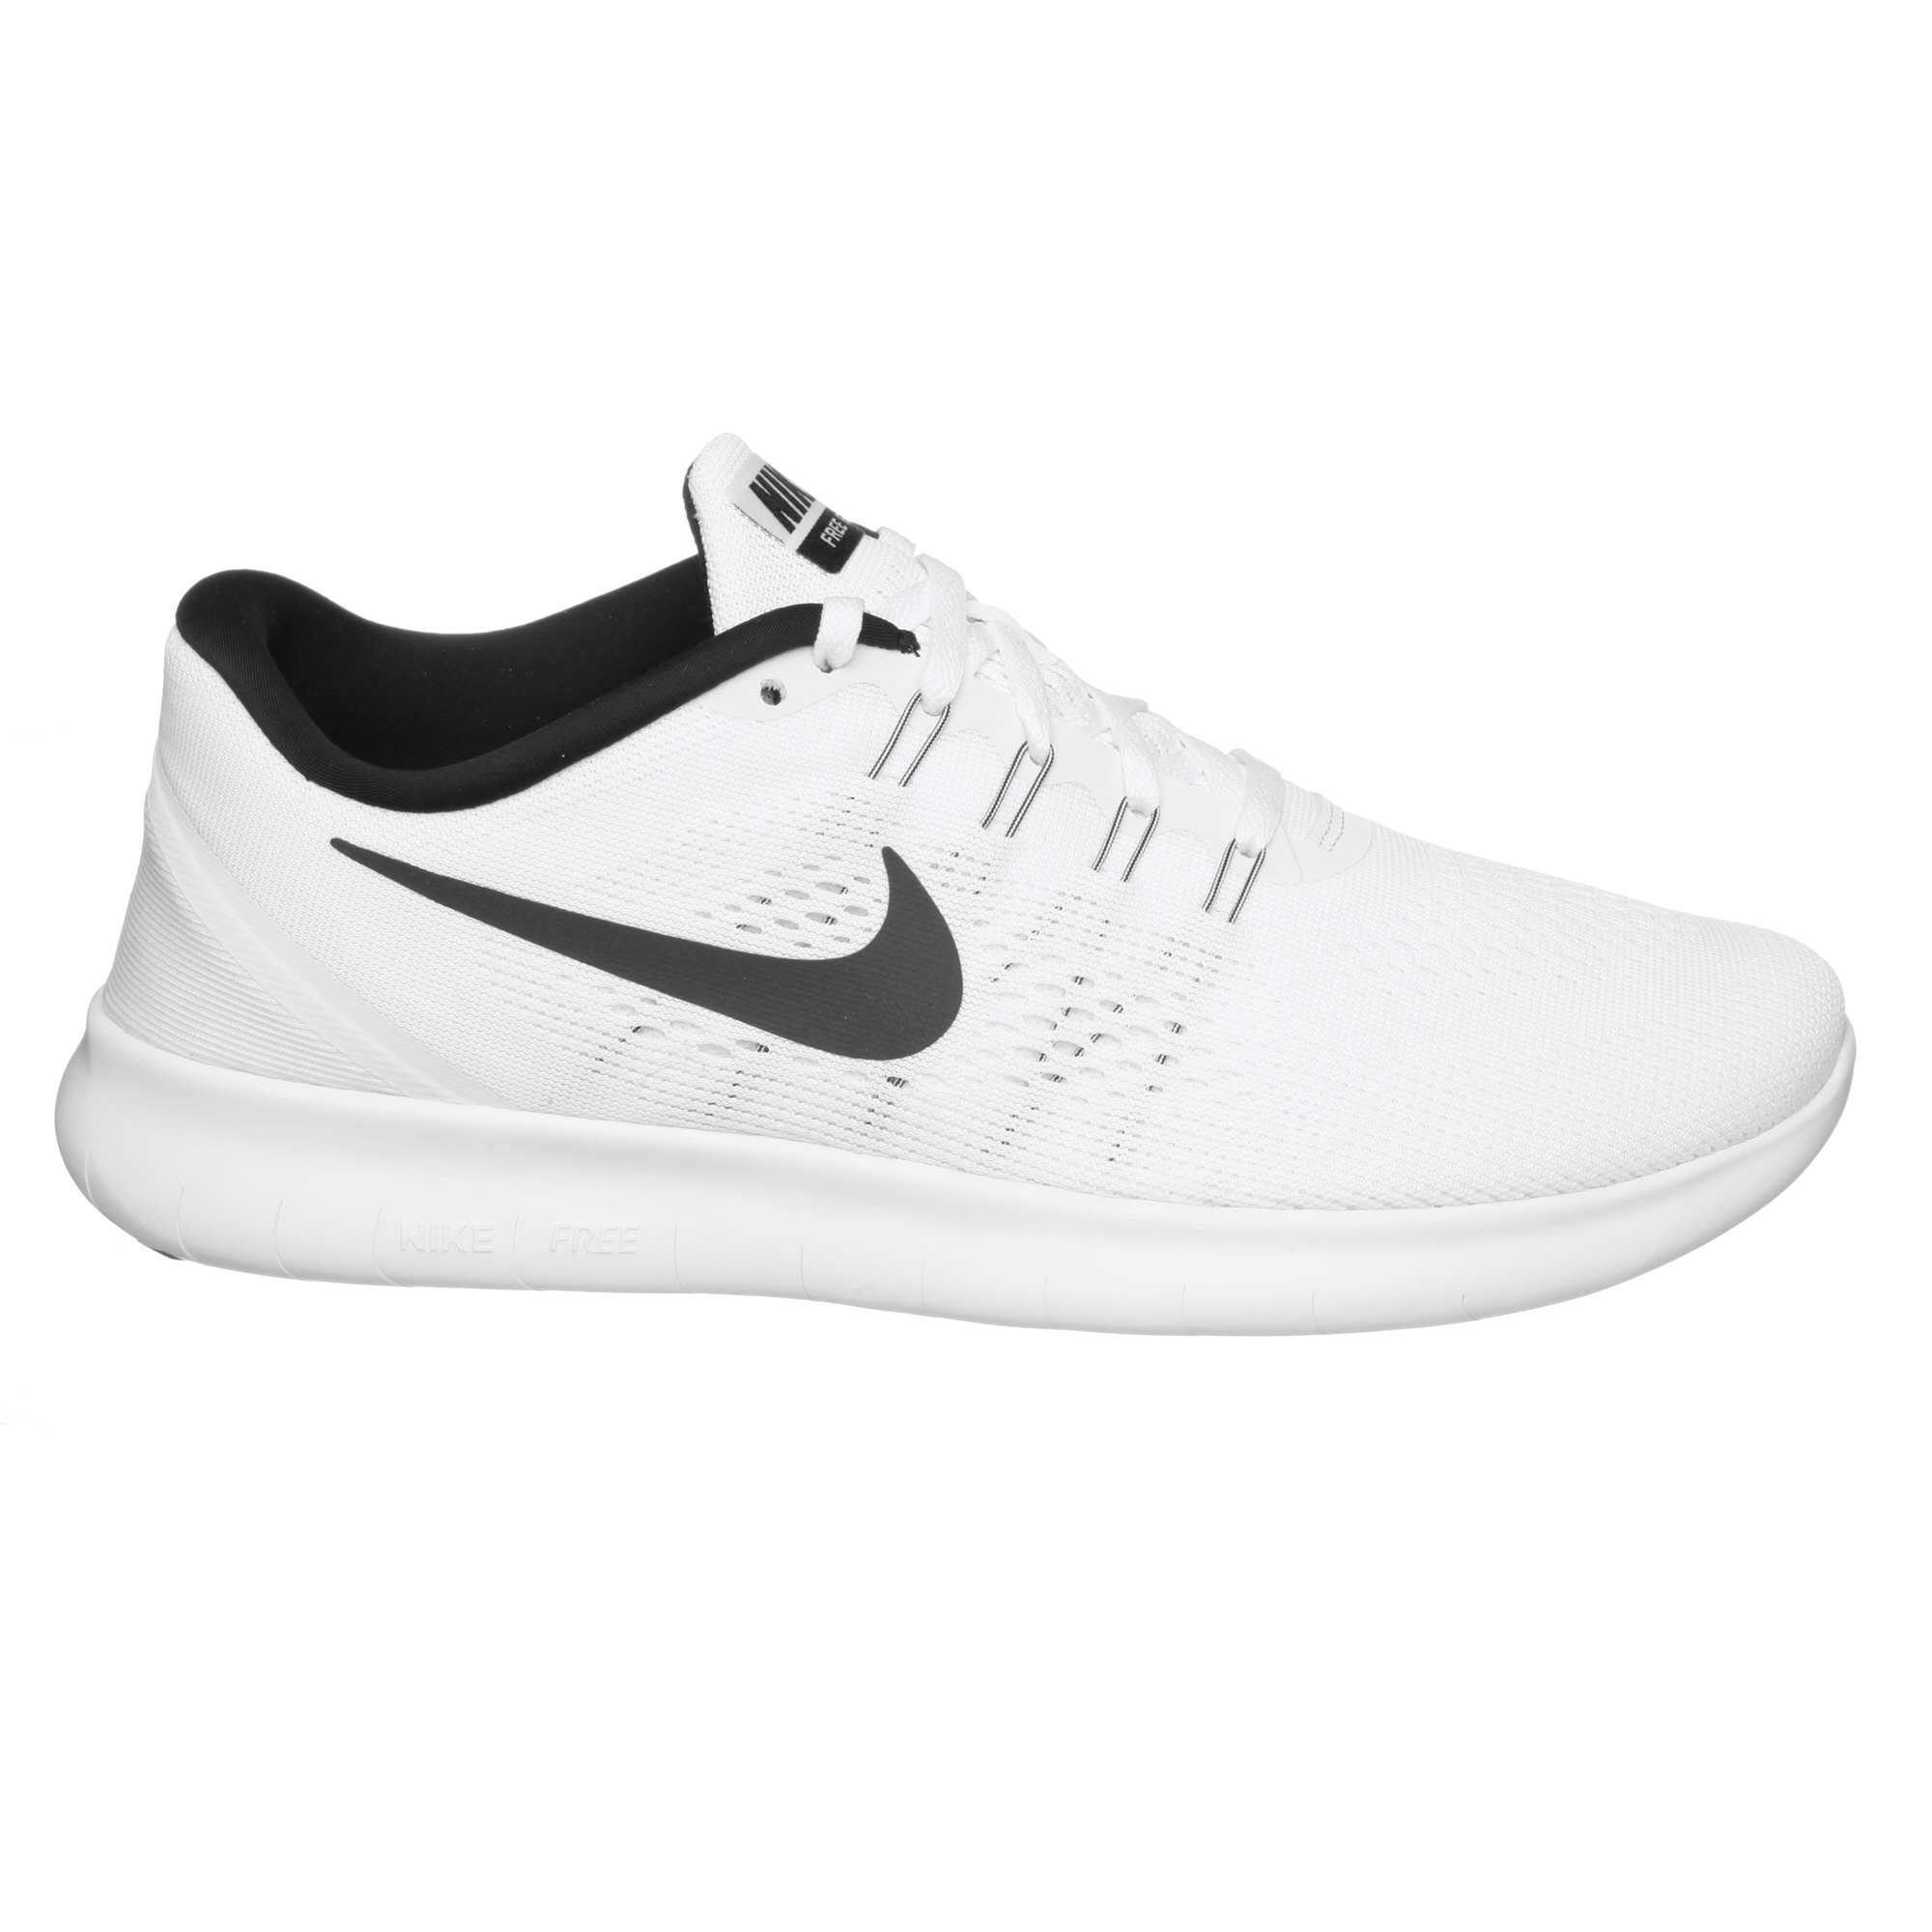 new arrival ed5f7 b5434 Nike Womens Free RN Running Shoe